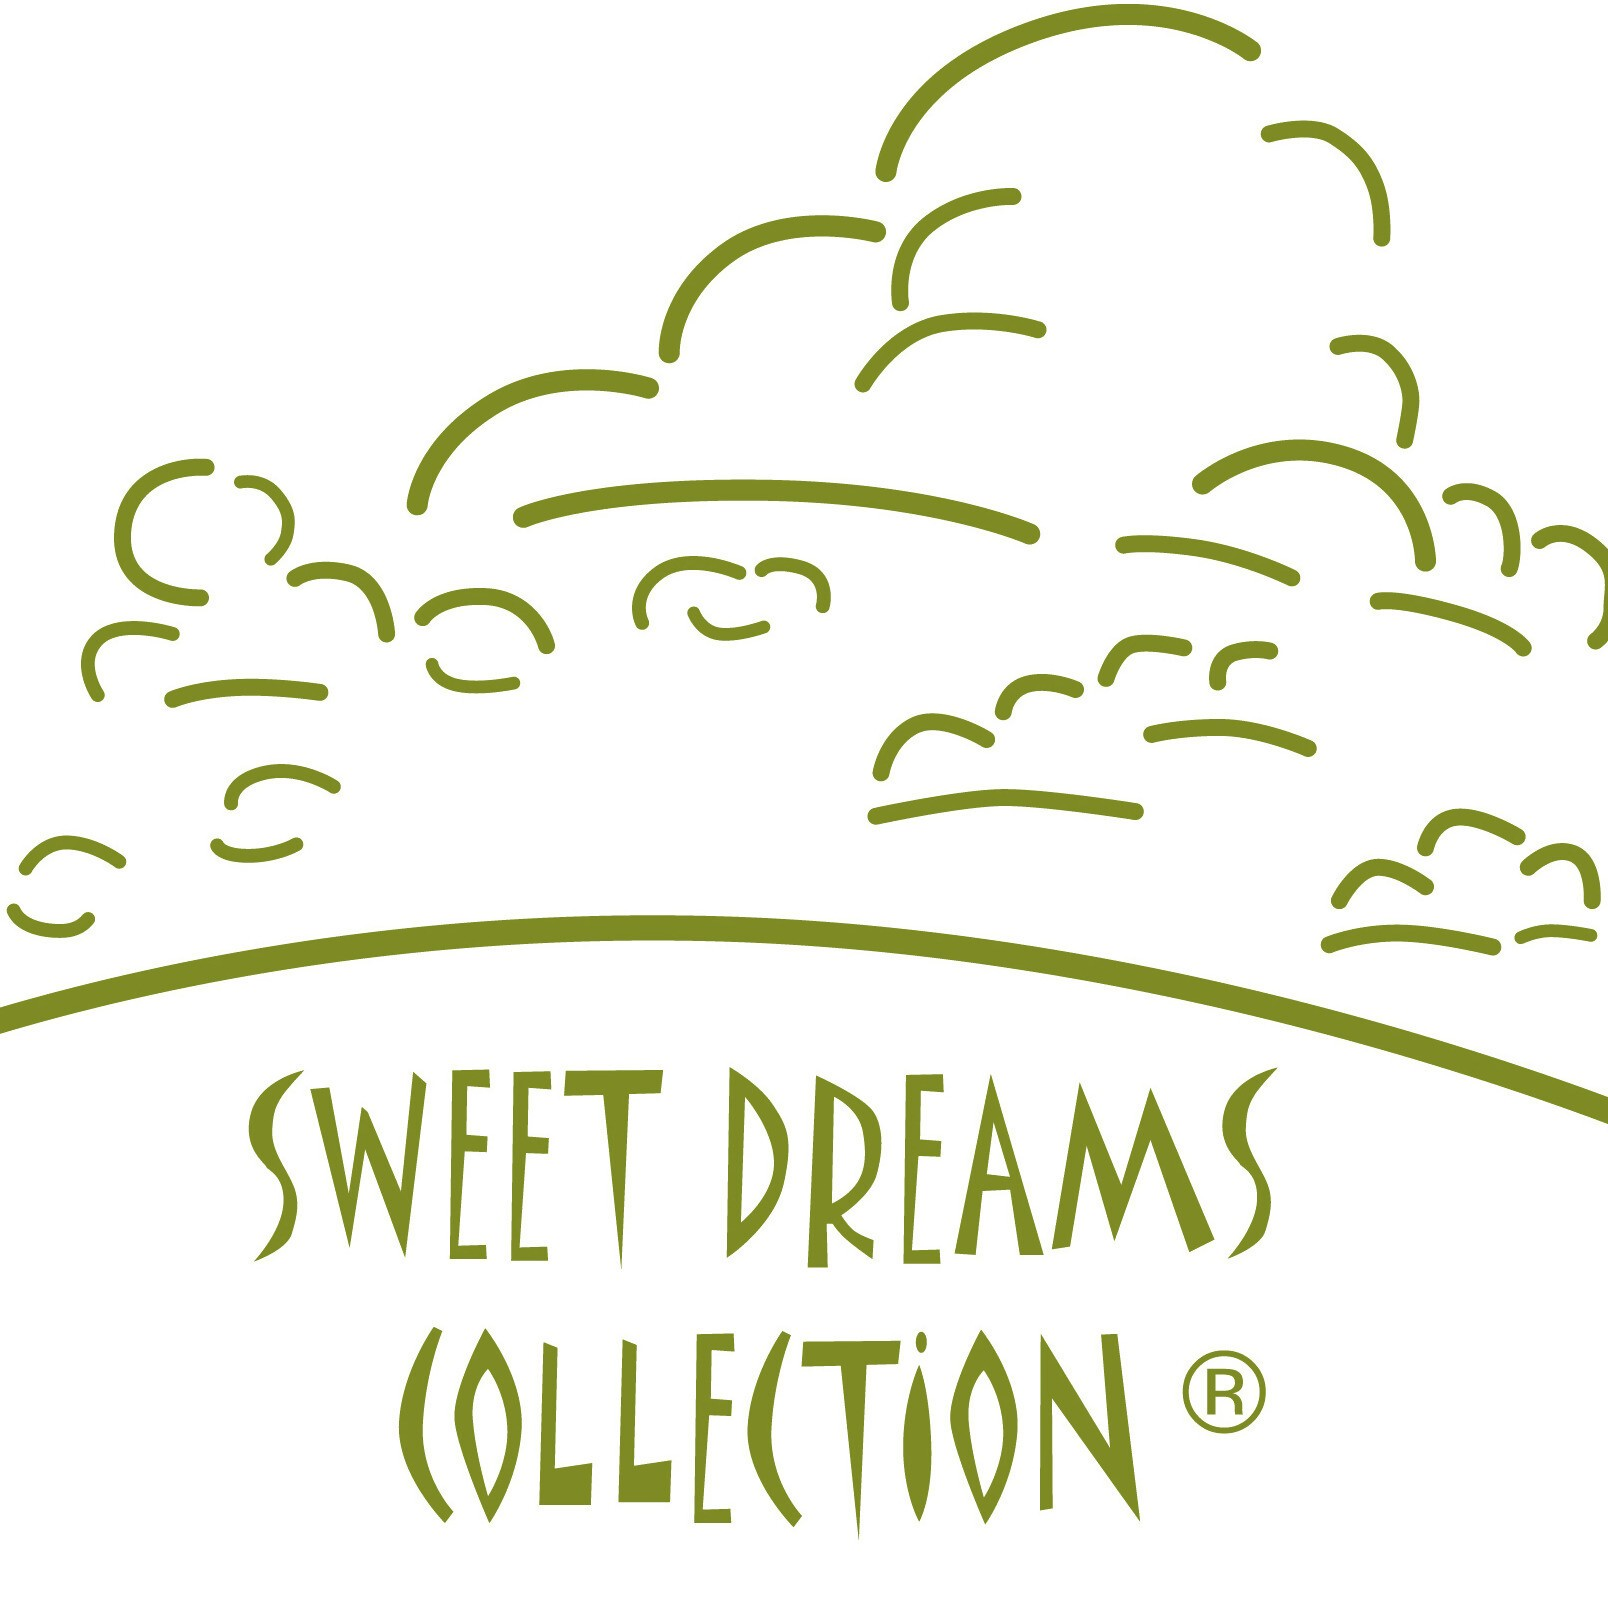 Sweet Dreams Collection